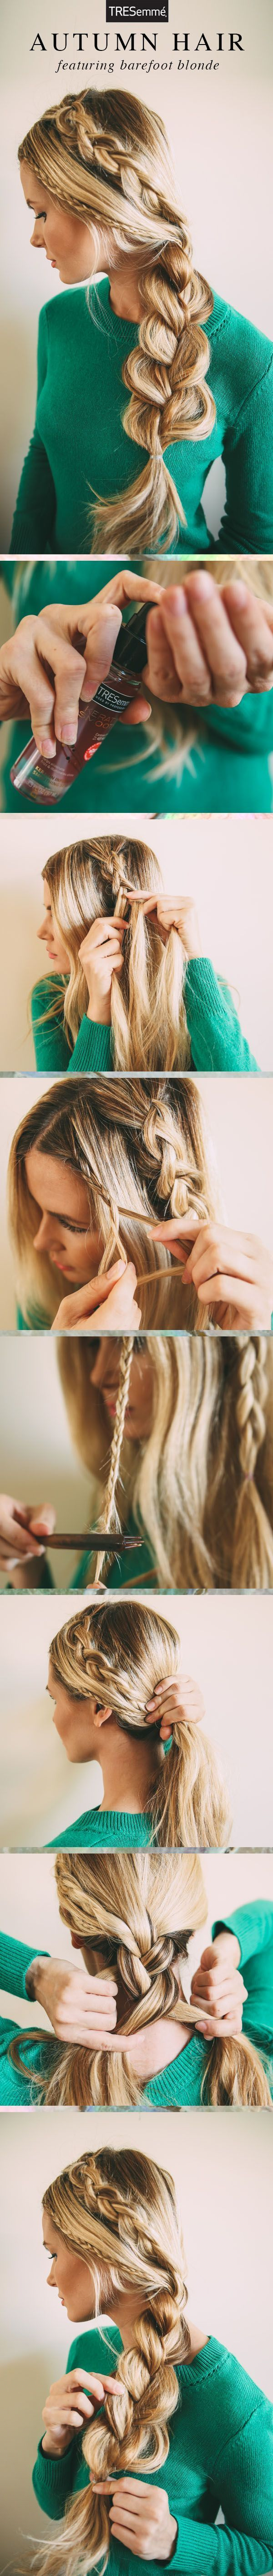 Autumn Braid Hair Tutorial